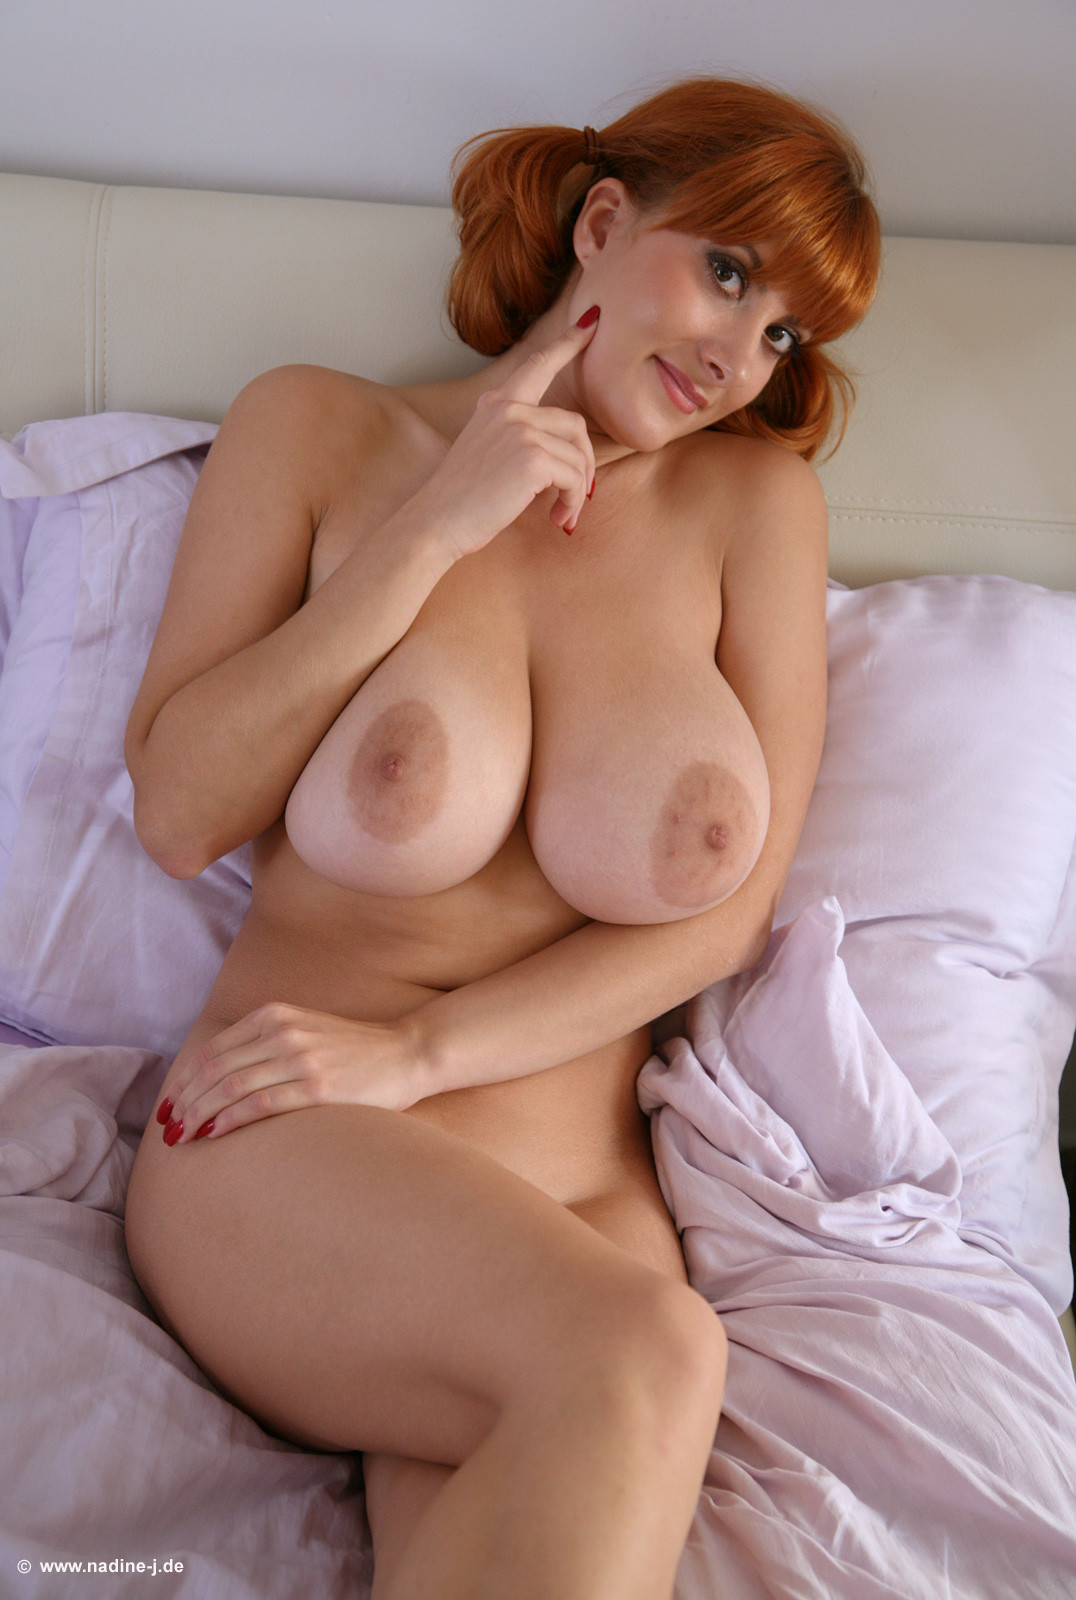 Busty young redheaded women nude